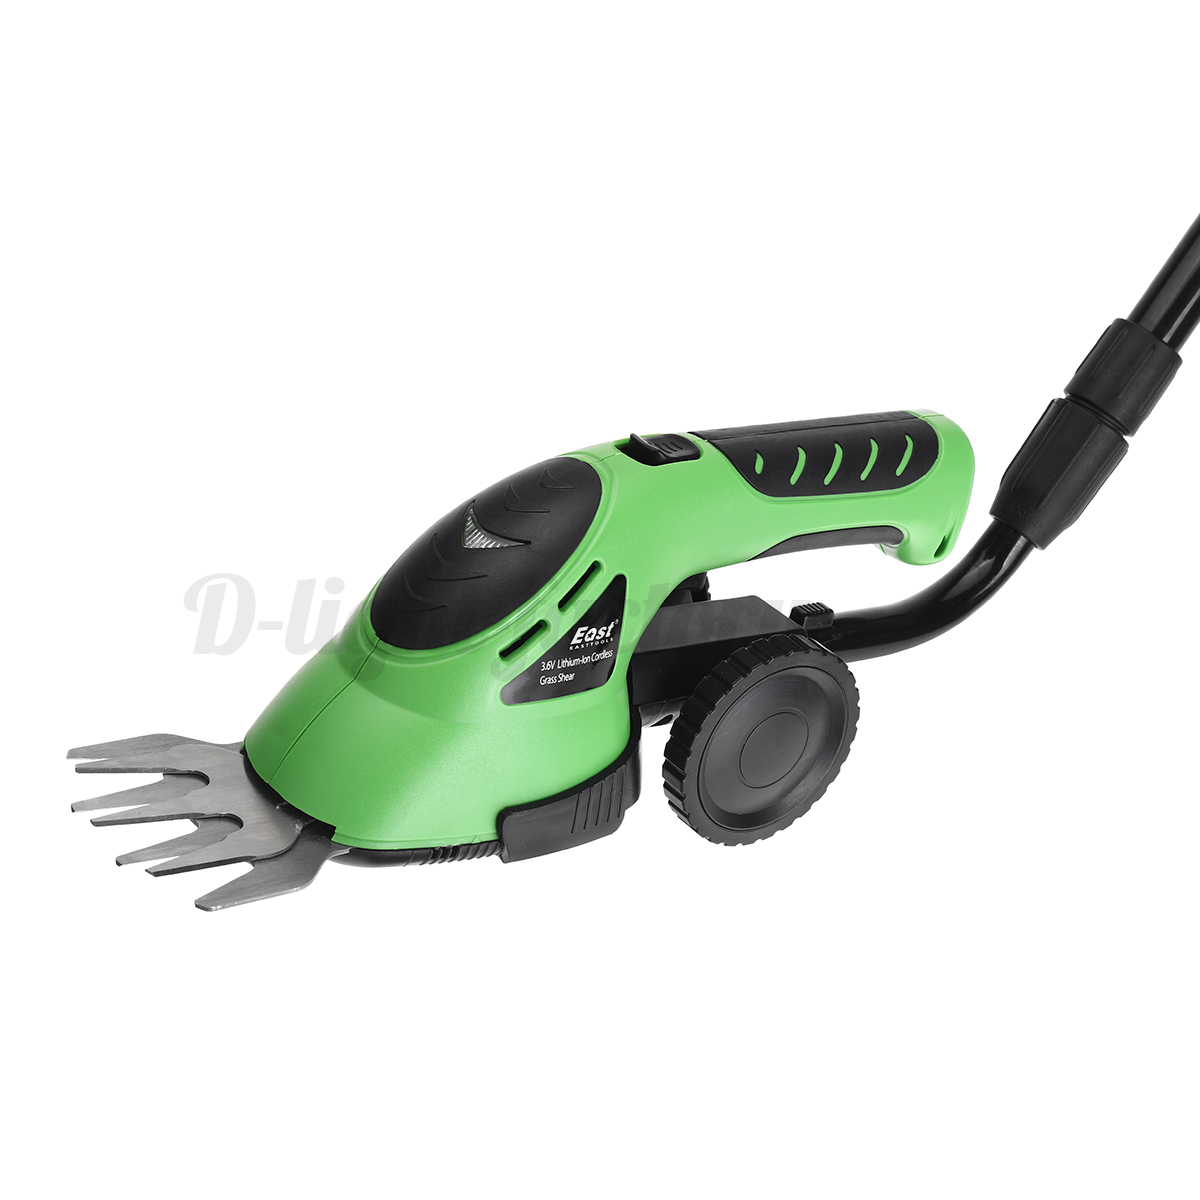 Cordless-Grass-Shear-Lawnmower-Garden-Pruning-Hedge-Trimmer-Rod-Wheel-Holder thumbnail 12